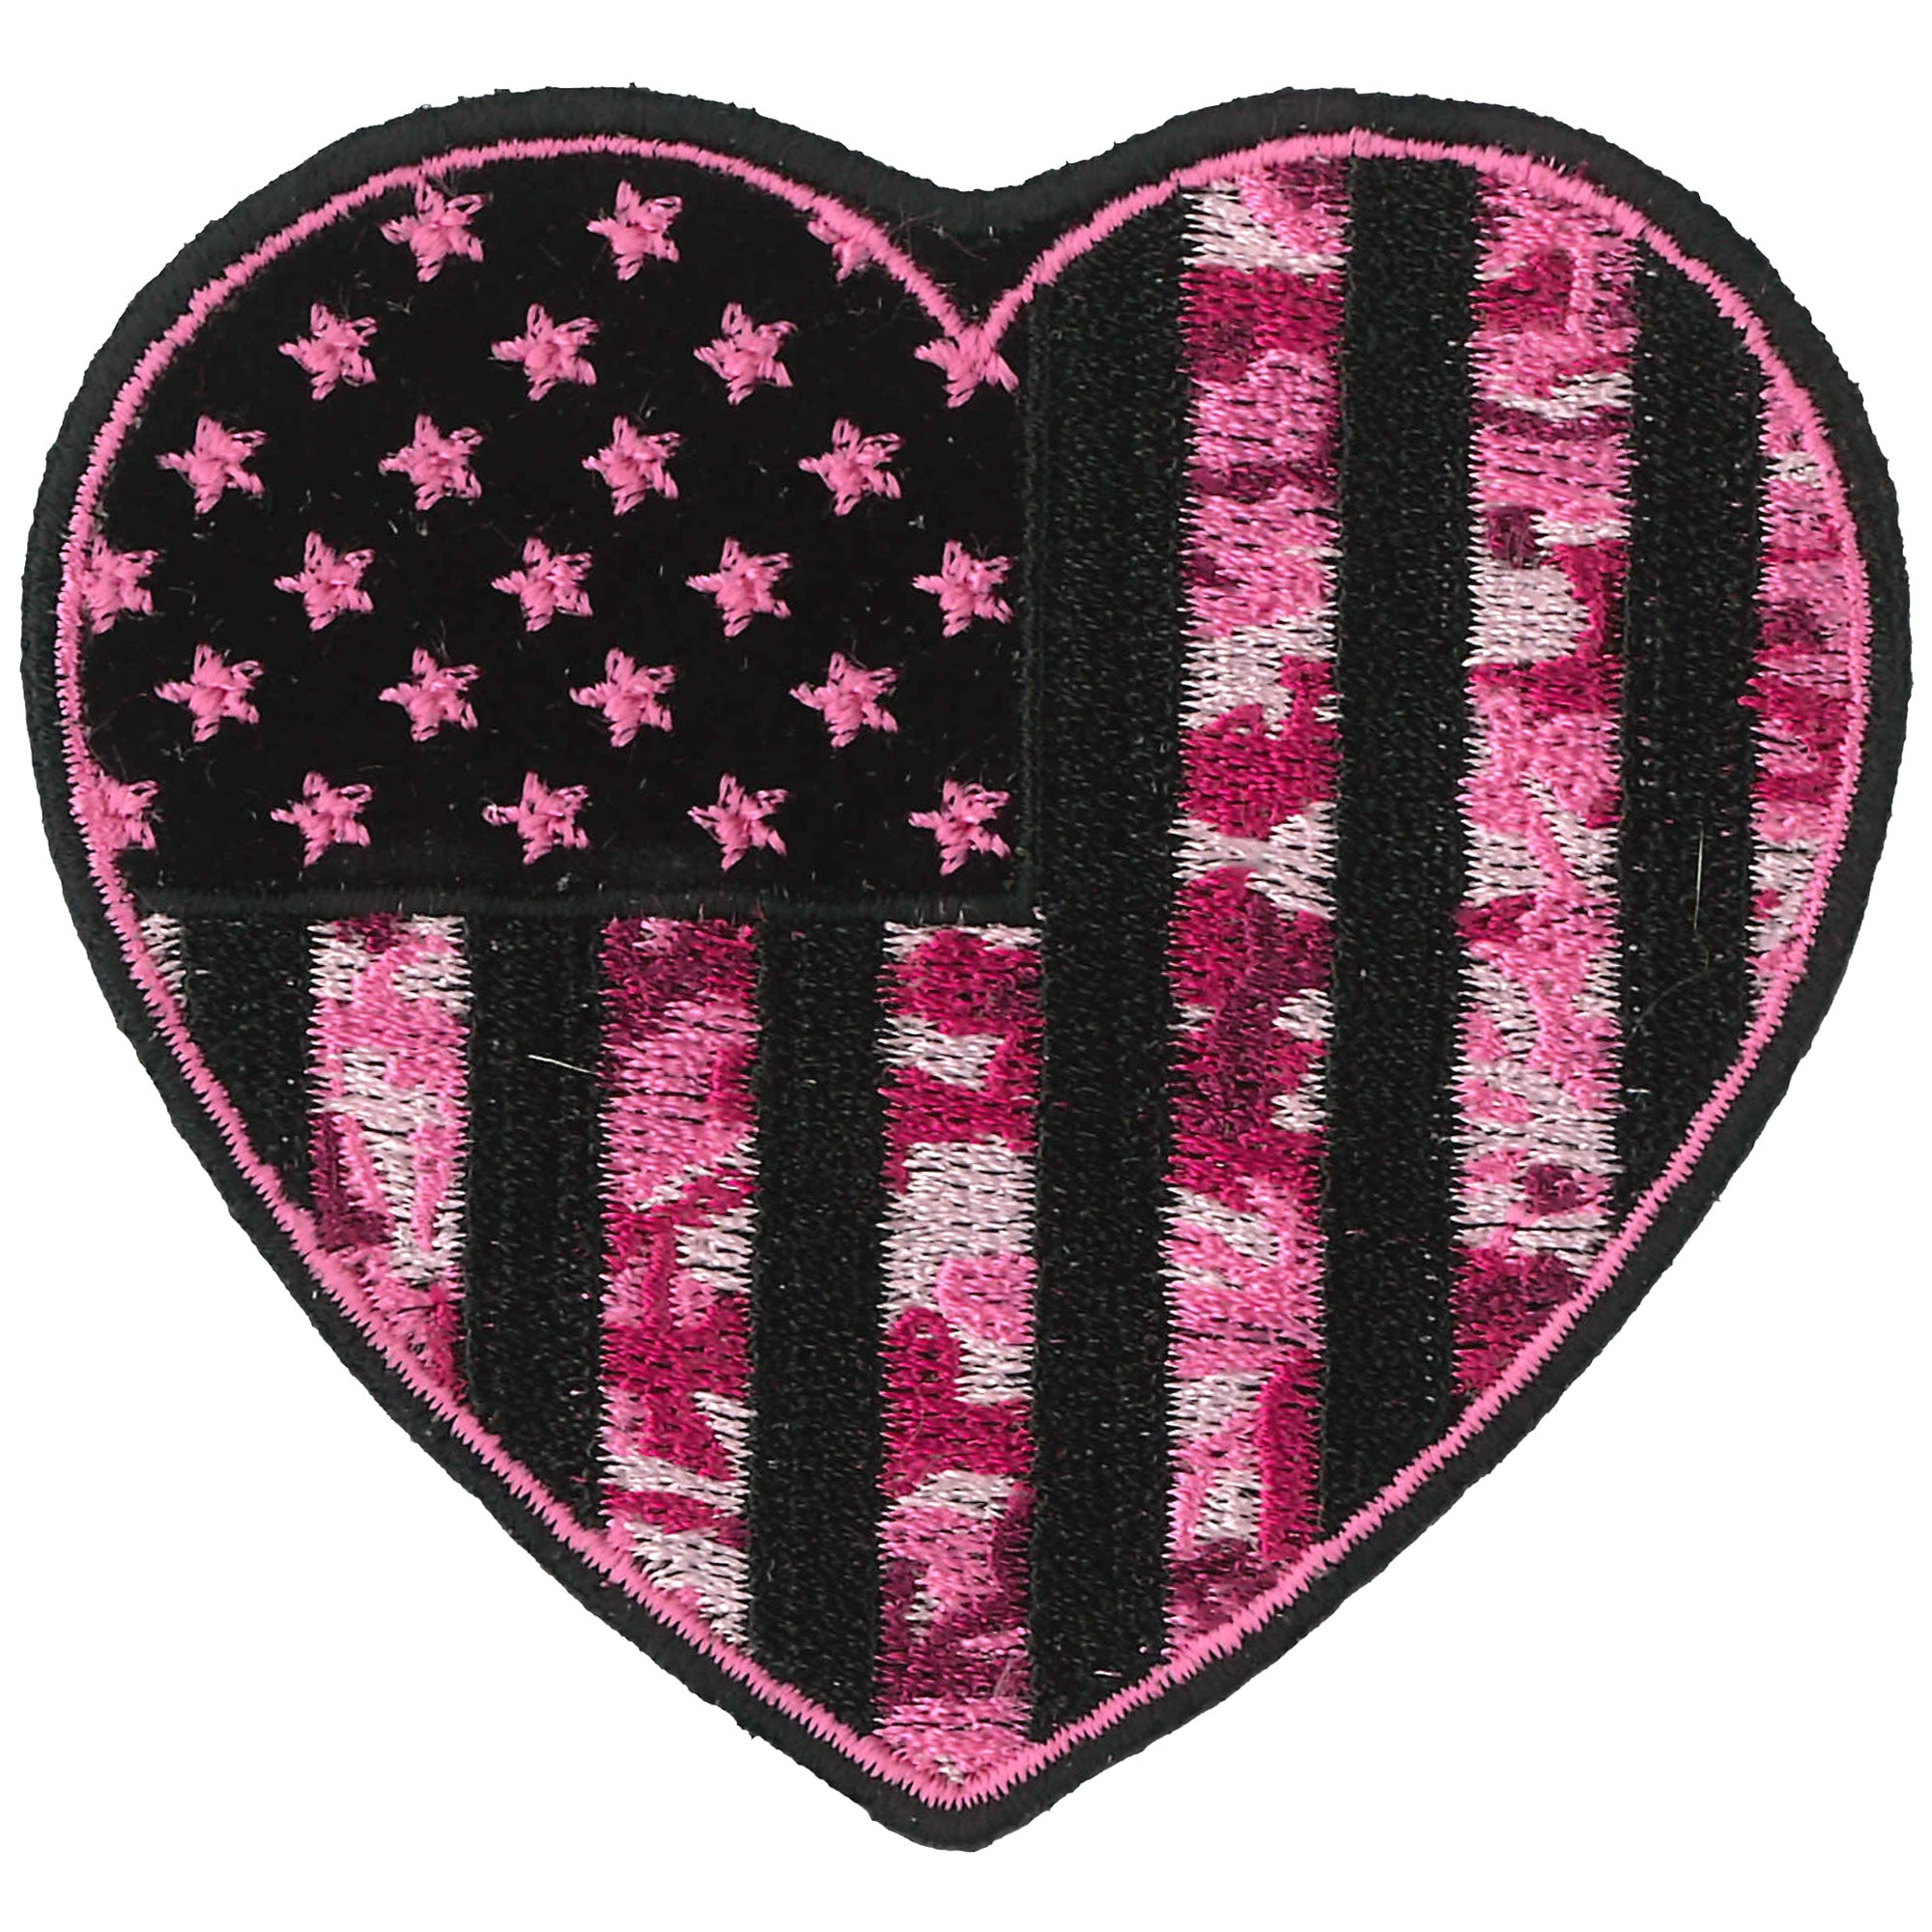 Hot Leathers Patch Camo Heart 3""